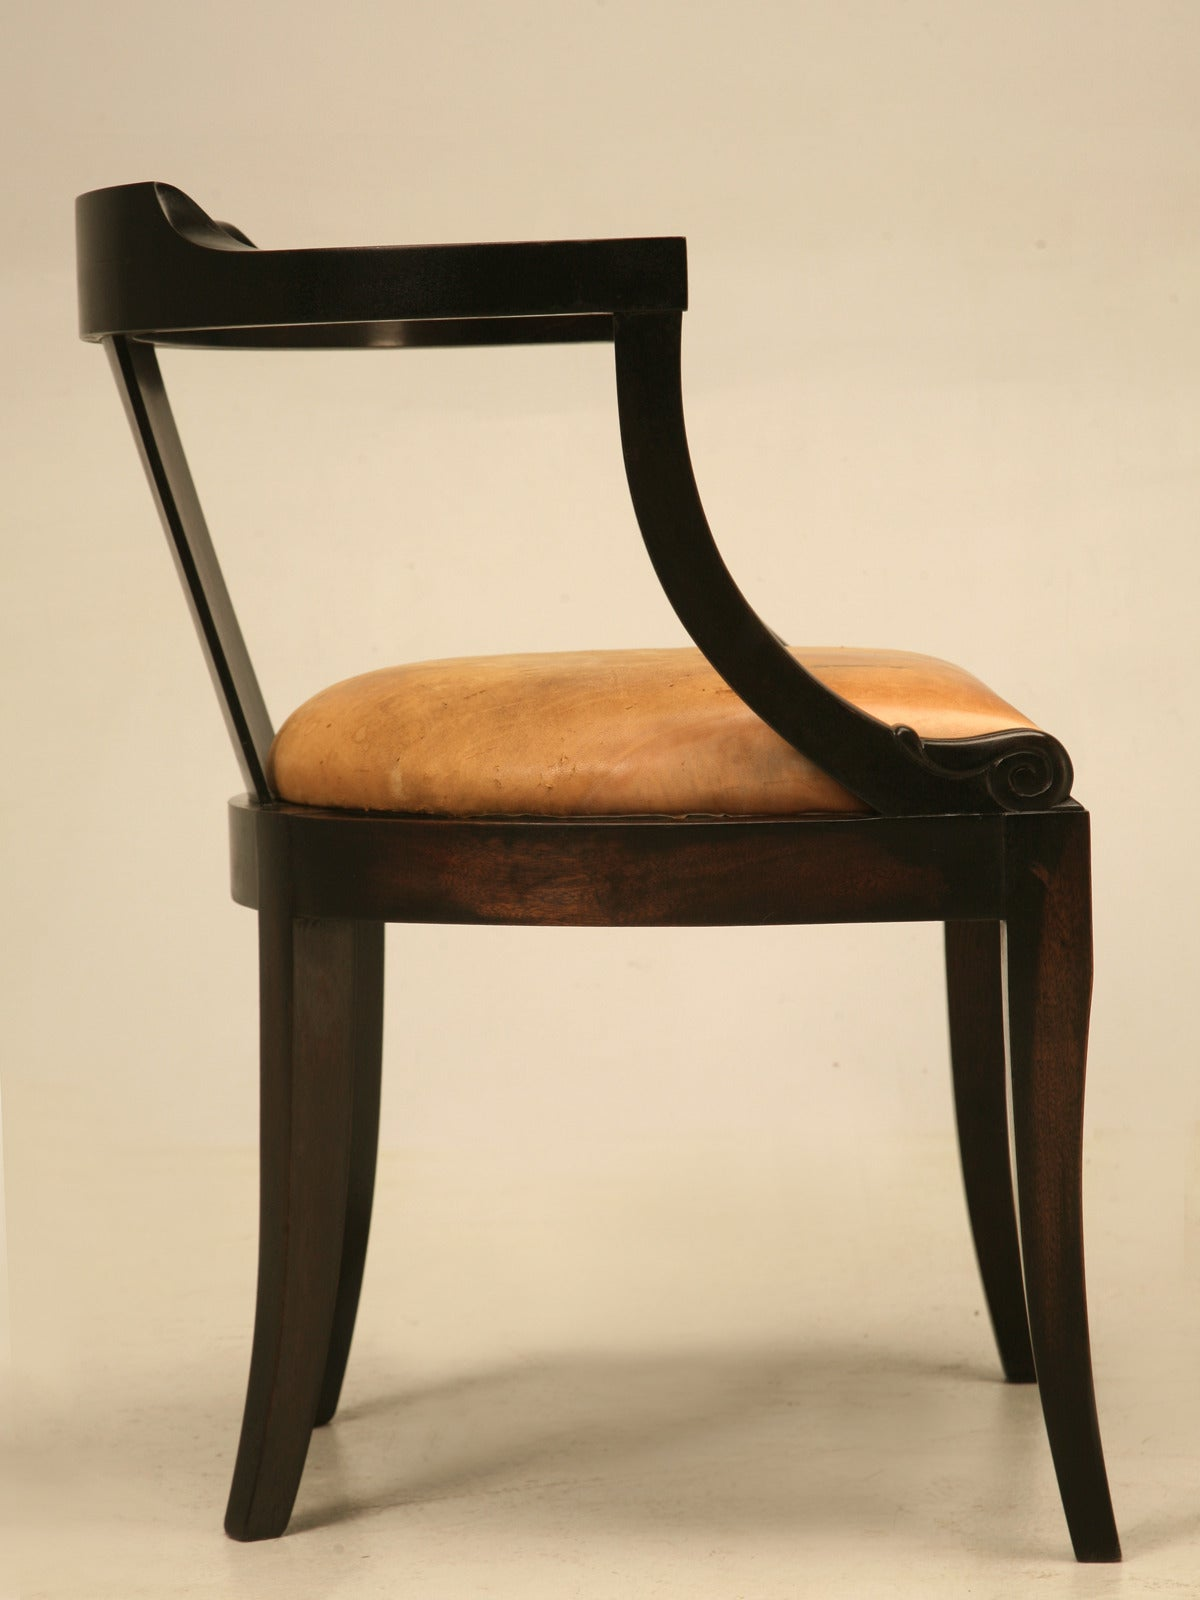 French Ebonized Mahogany Antique Desk Chair with a Leather Seat Cushion For Sale 5